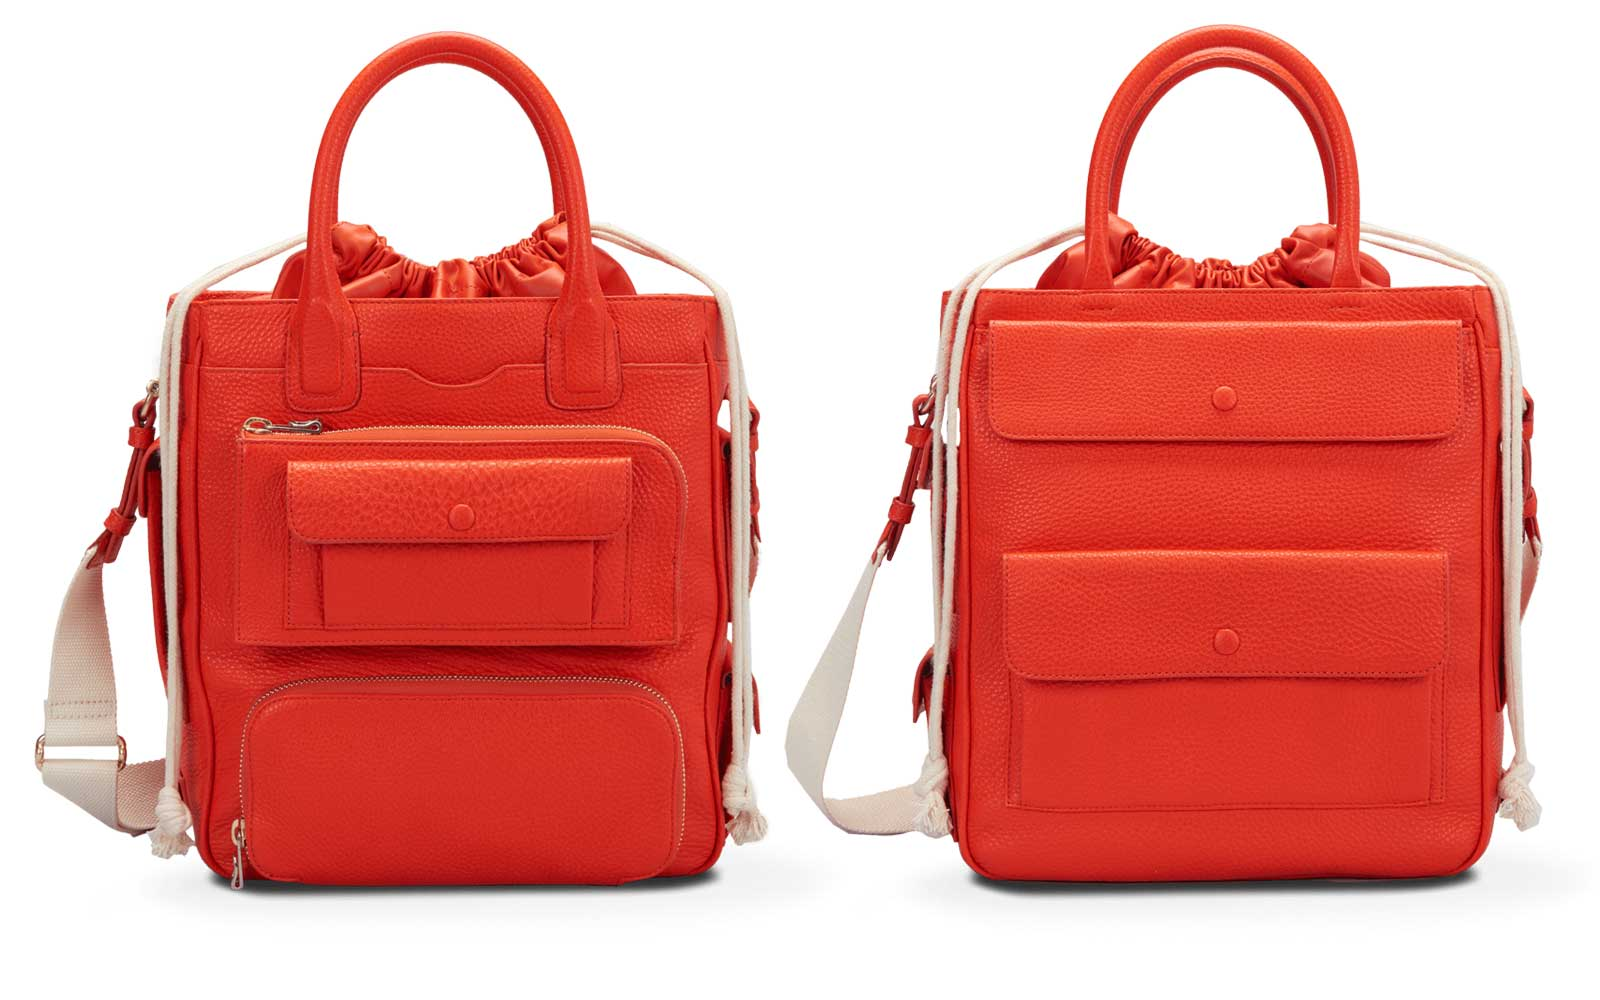 Bill Blass Backpacks